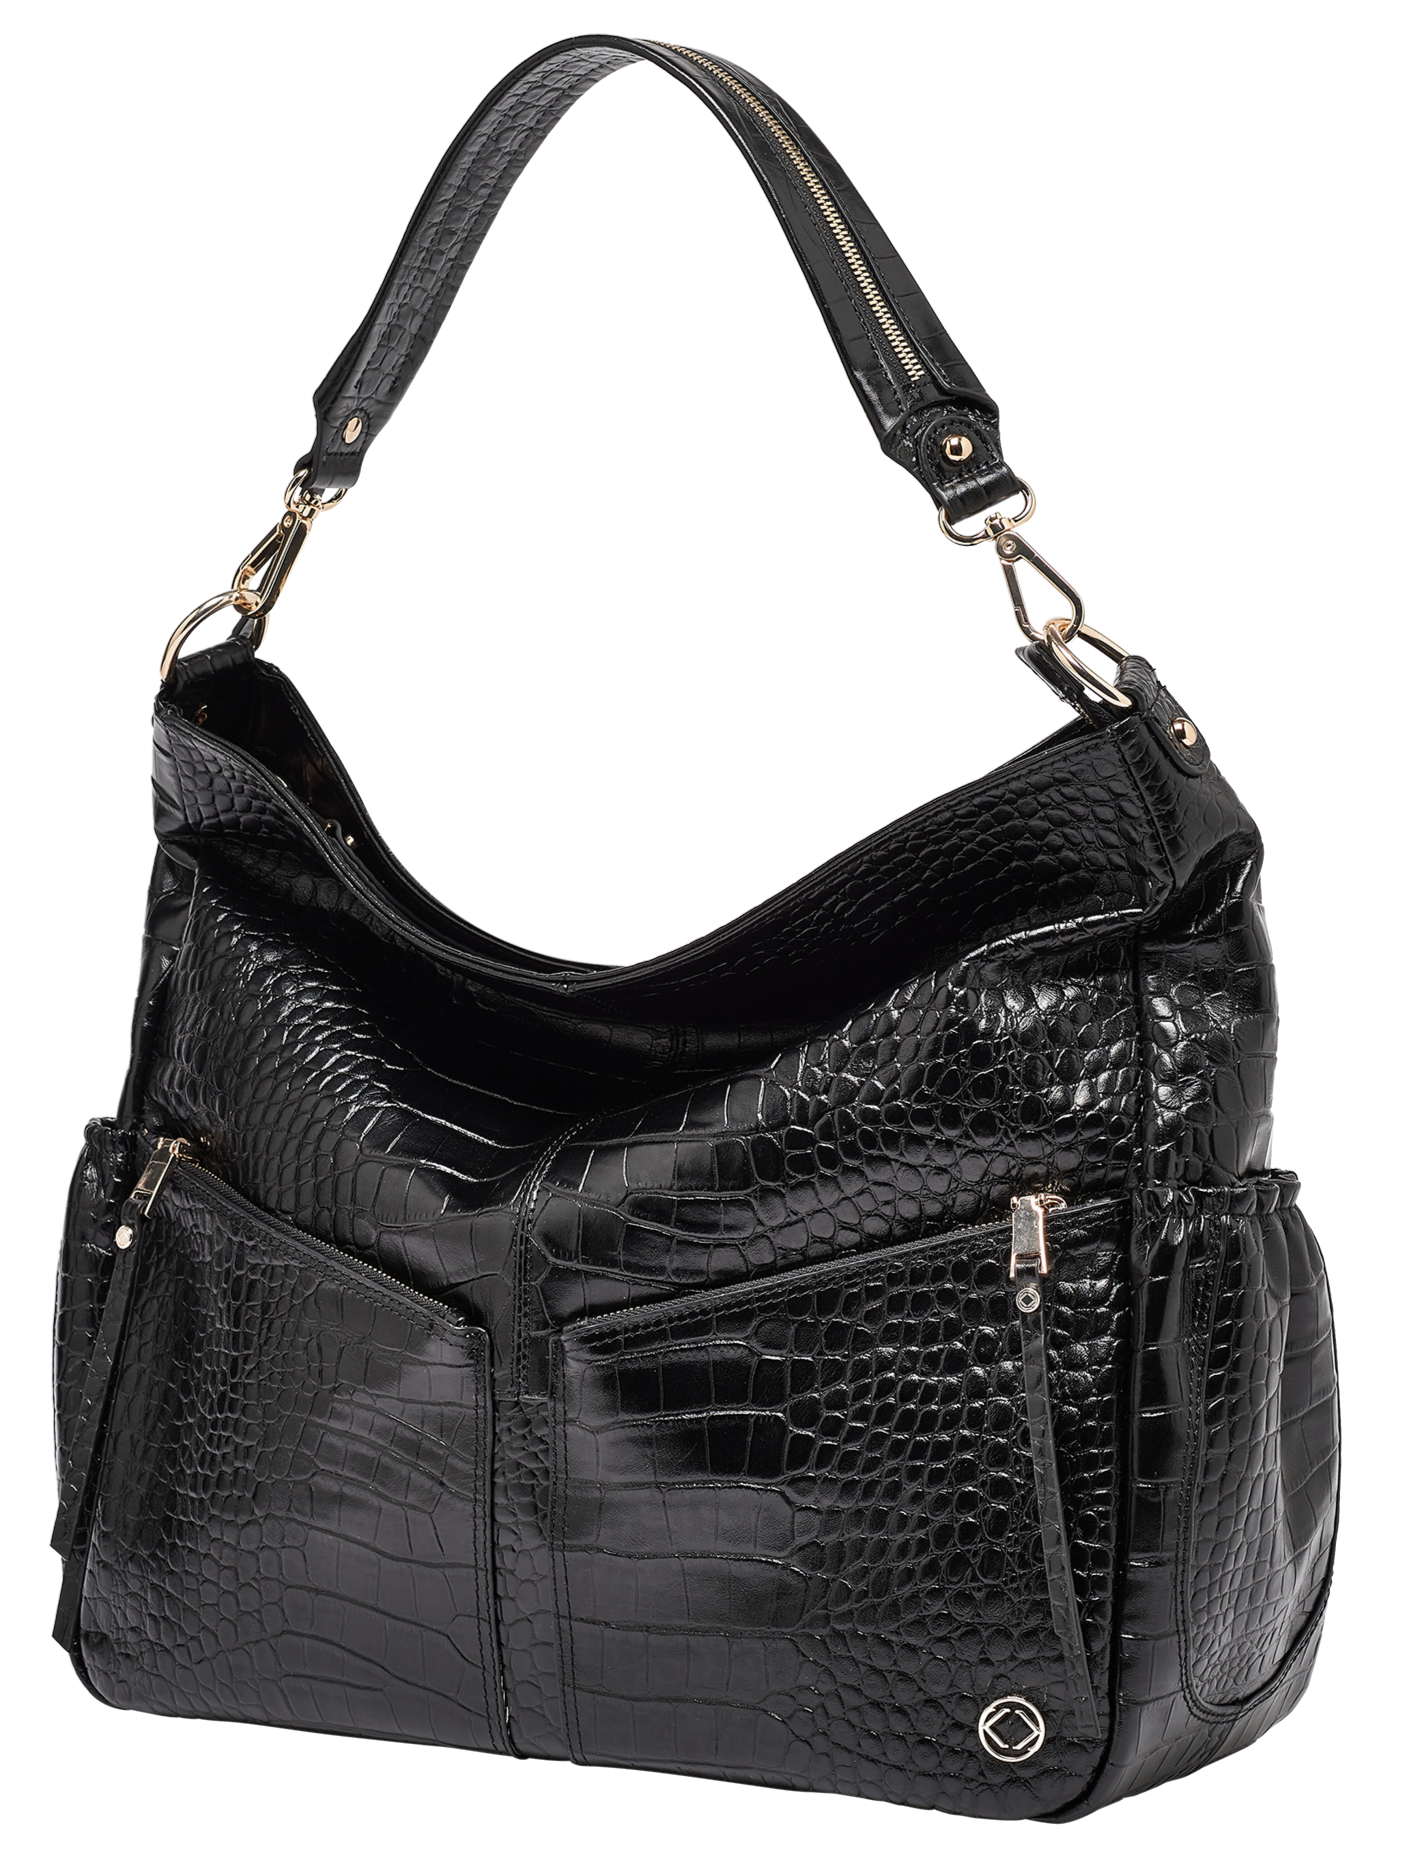 Add some extra style to your day with our black croc handbag from KeriKit's Lennox range. KeriKit has prioritised style, luxury, and practicality with its choice of kit bags, order today.